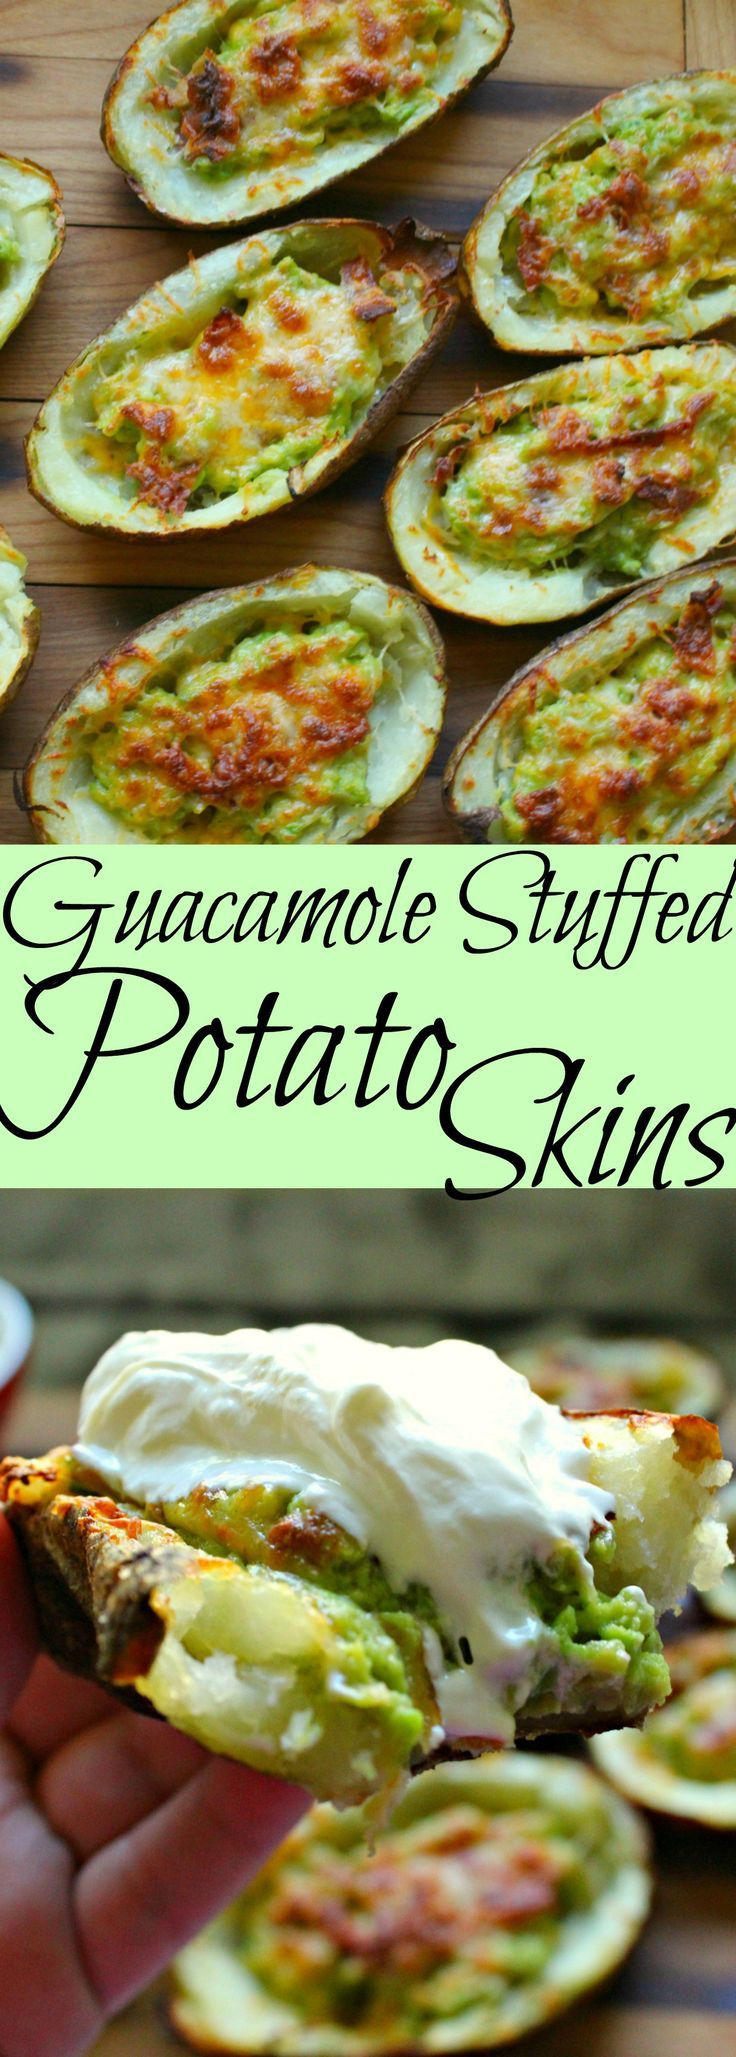 V - Guacamole Stuffed Potato Skins                                                                                                                                                                                 More